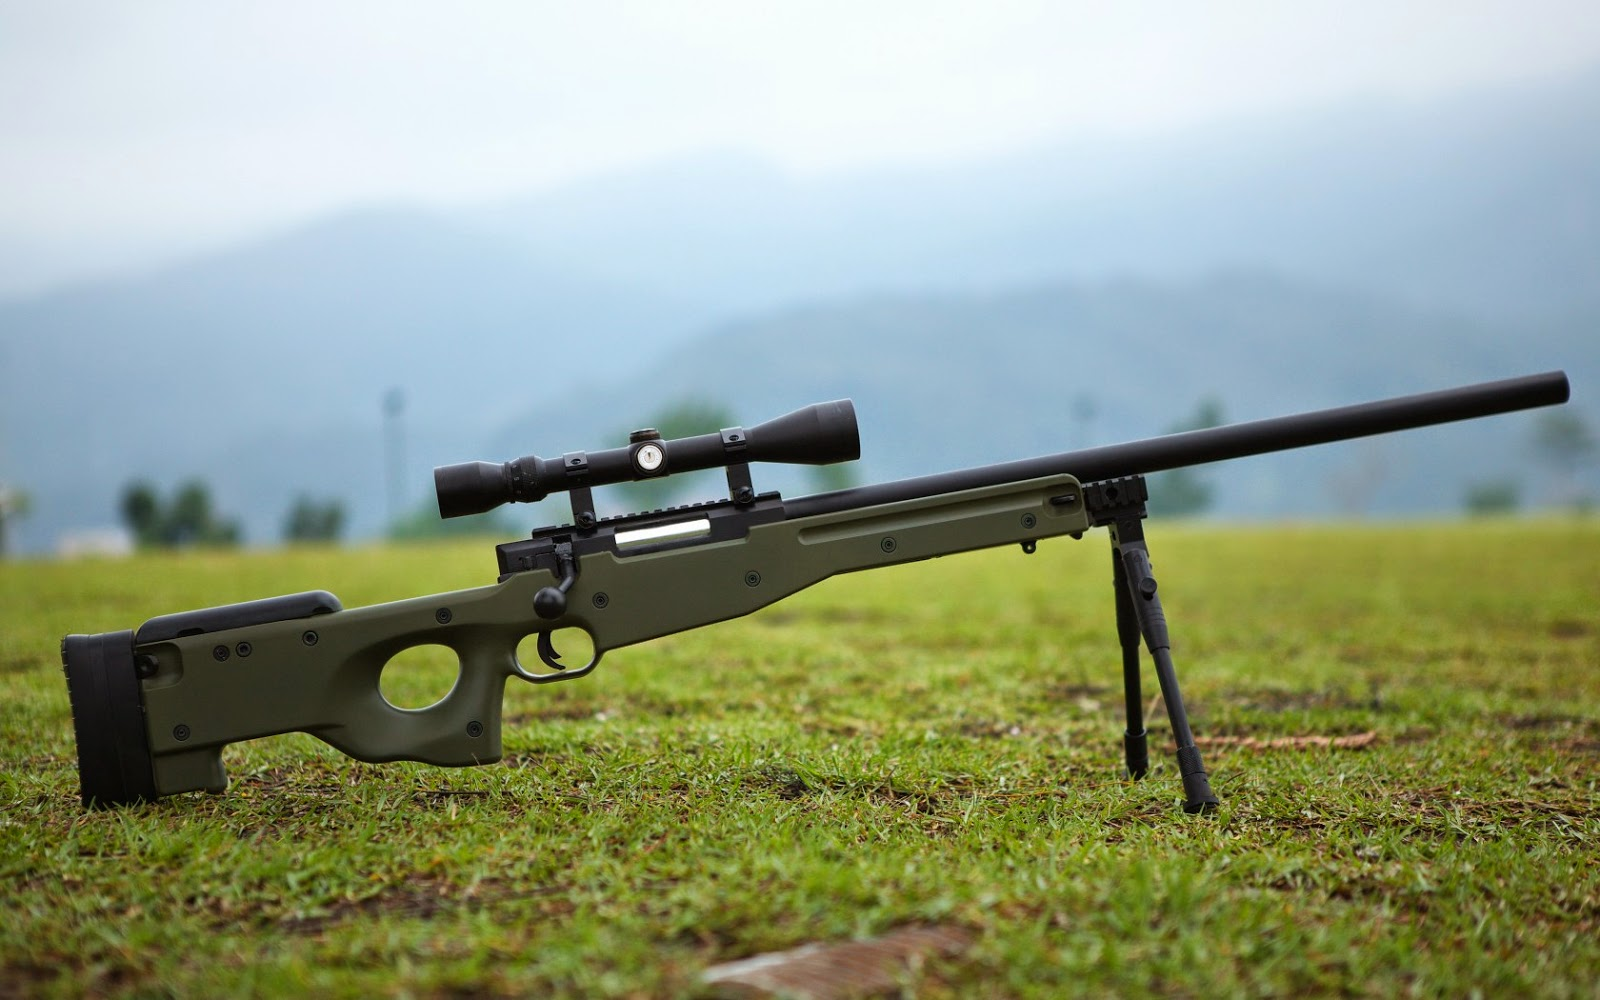 Don T Fall In Love Wallpaper Sniper Rifles Hd Wallpapers By Pcbots Pcbots Labs Blog